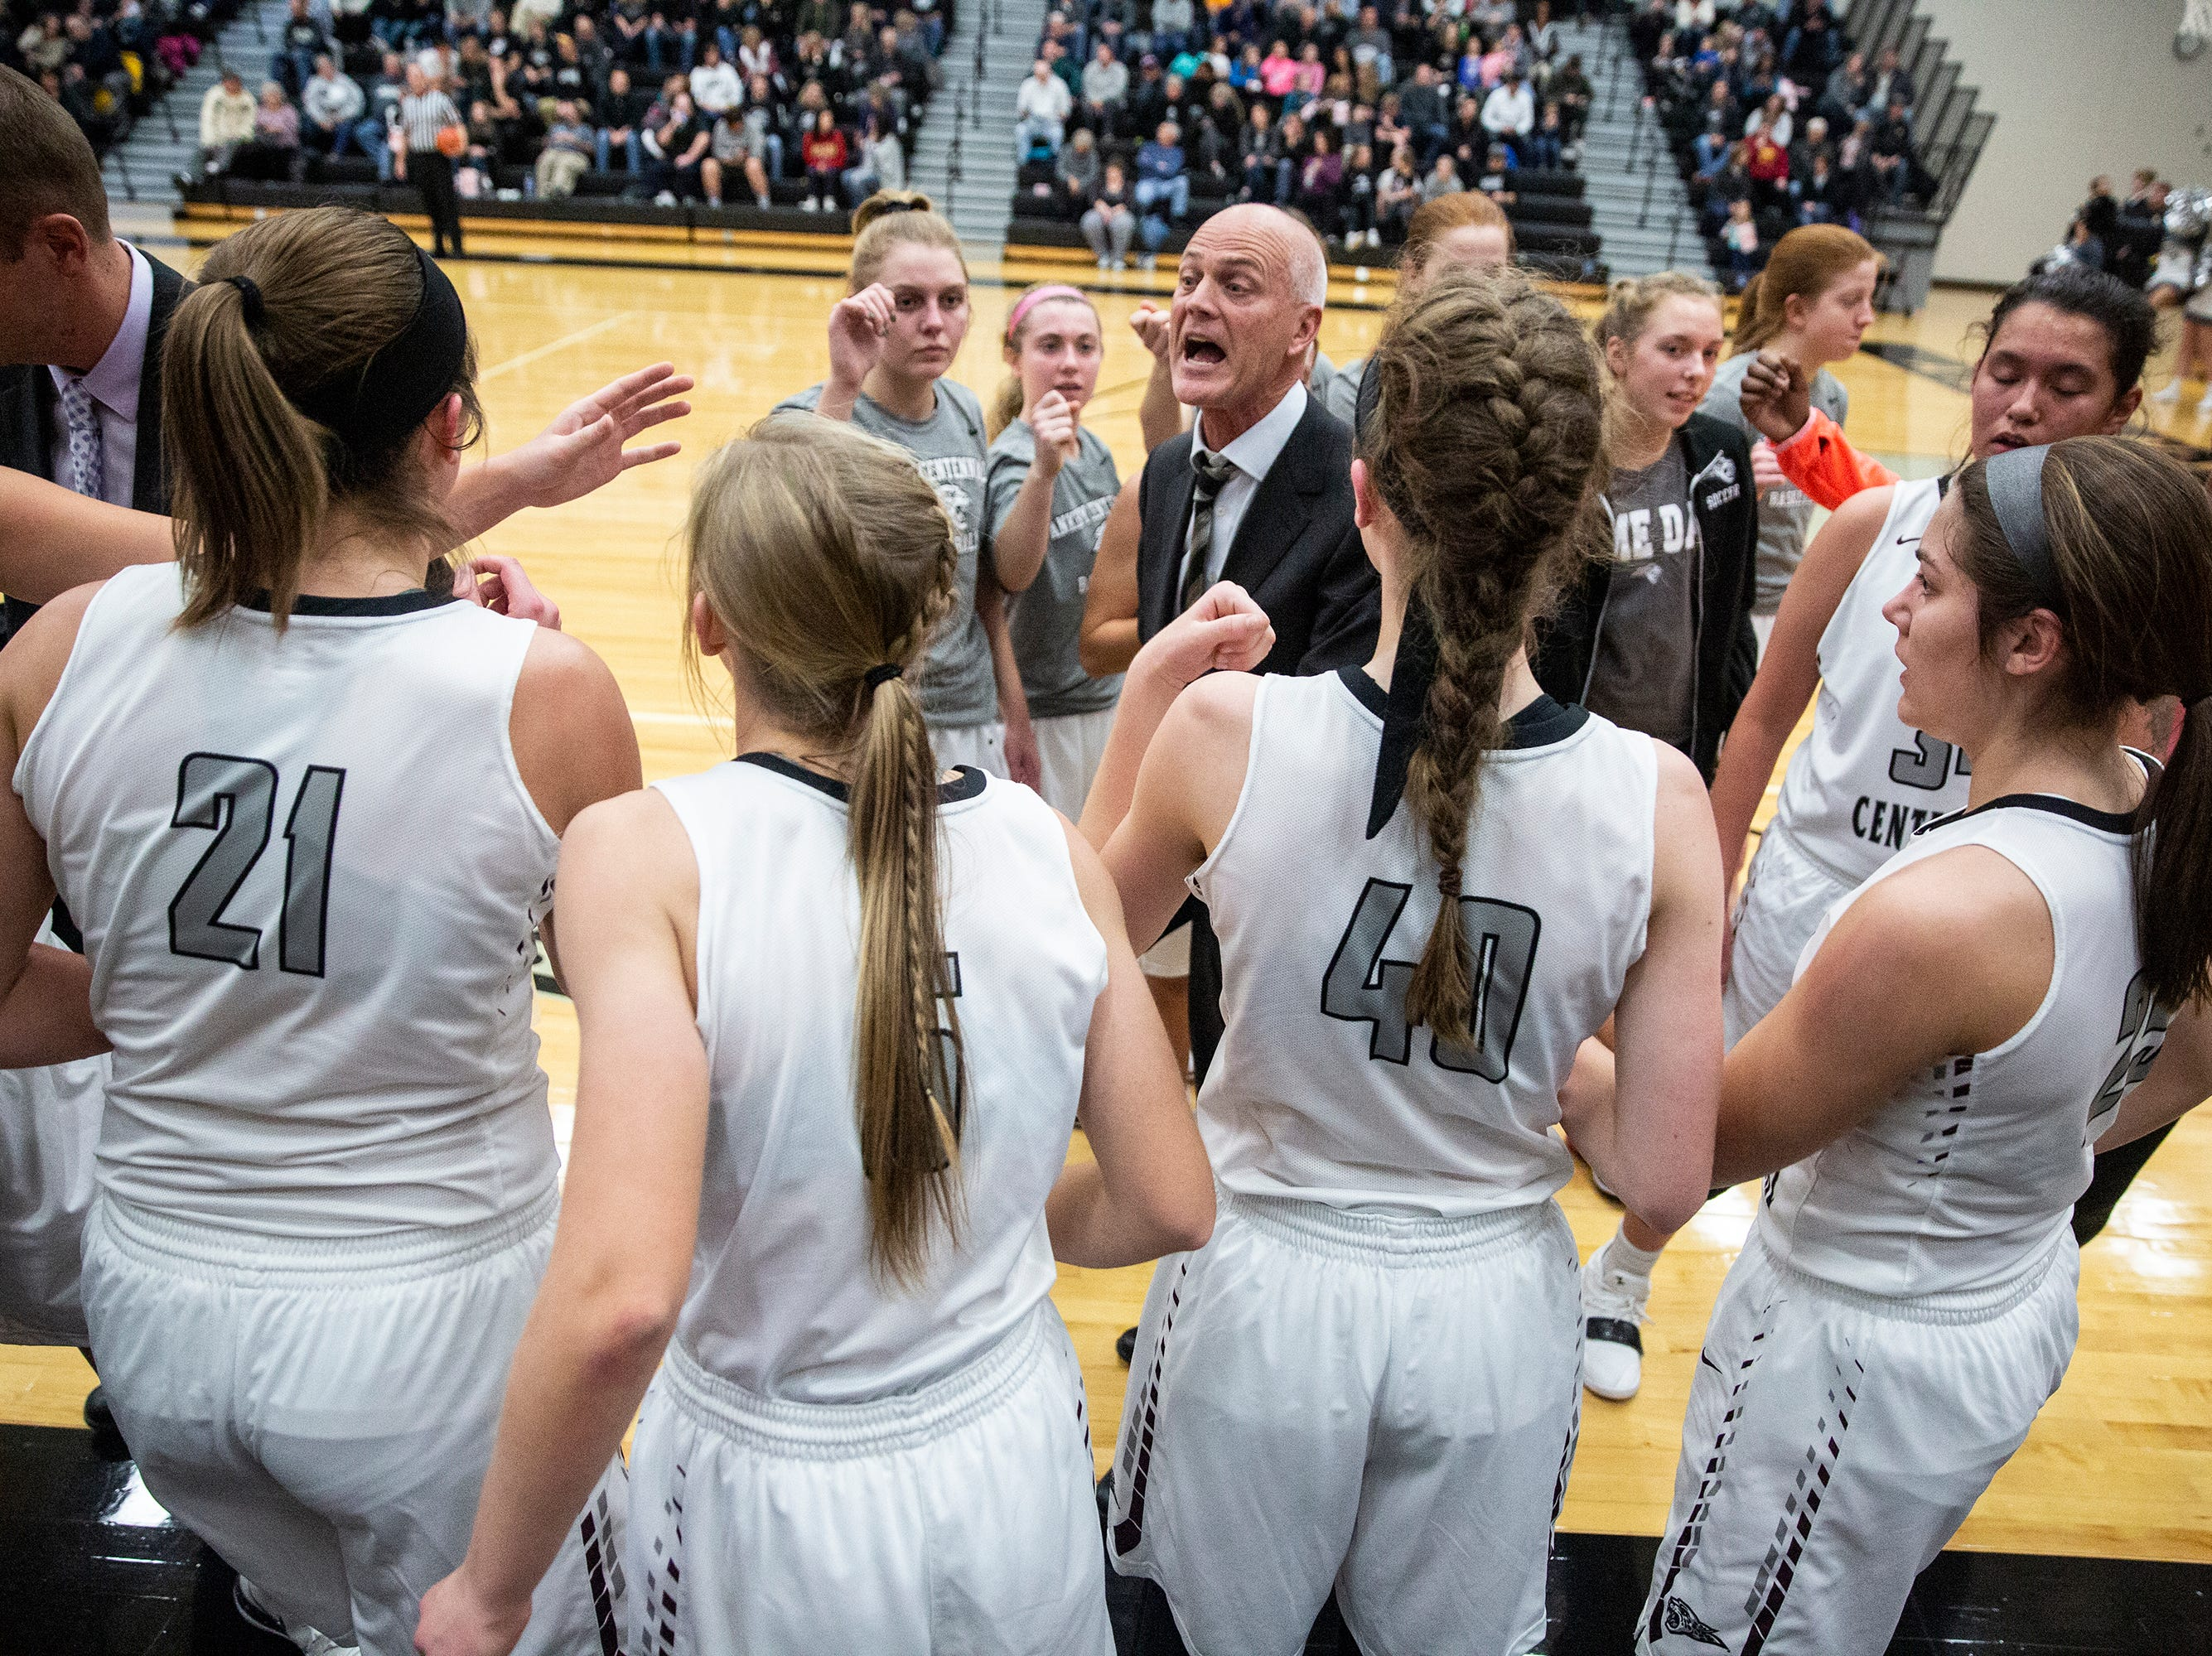 Centennial Coach Scott Dejong talks to his team during a time out during the Southeast Polk vs. Ankeny Centennial girls' basketball game on Tuesday, Nov. 27, 2018, at Ankeny Centennial High School.